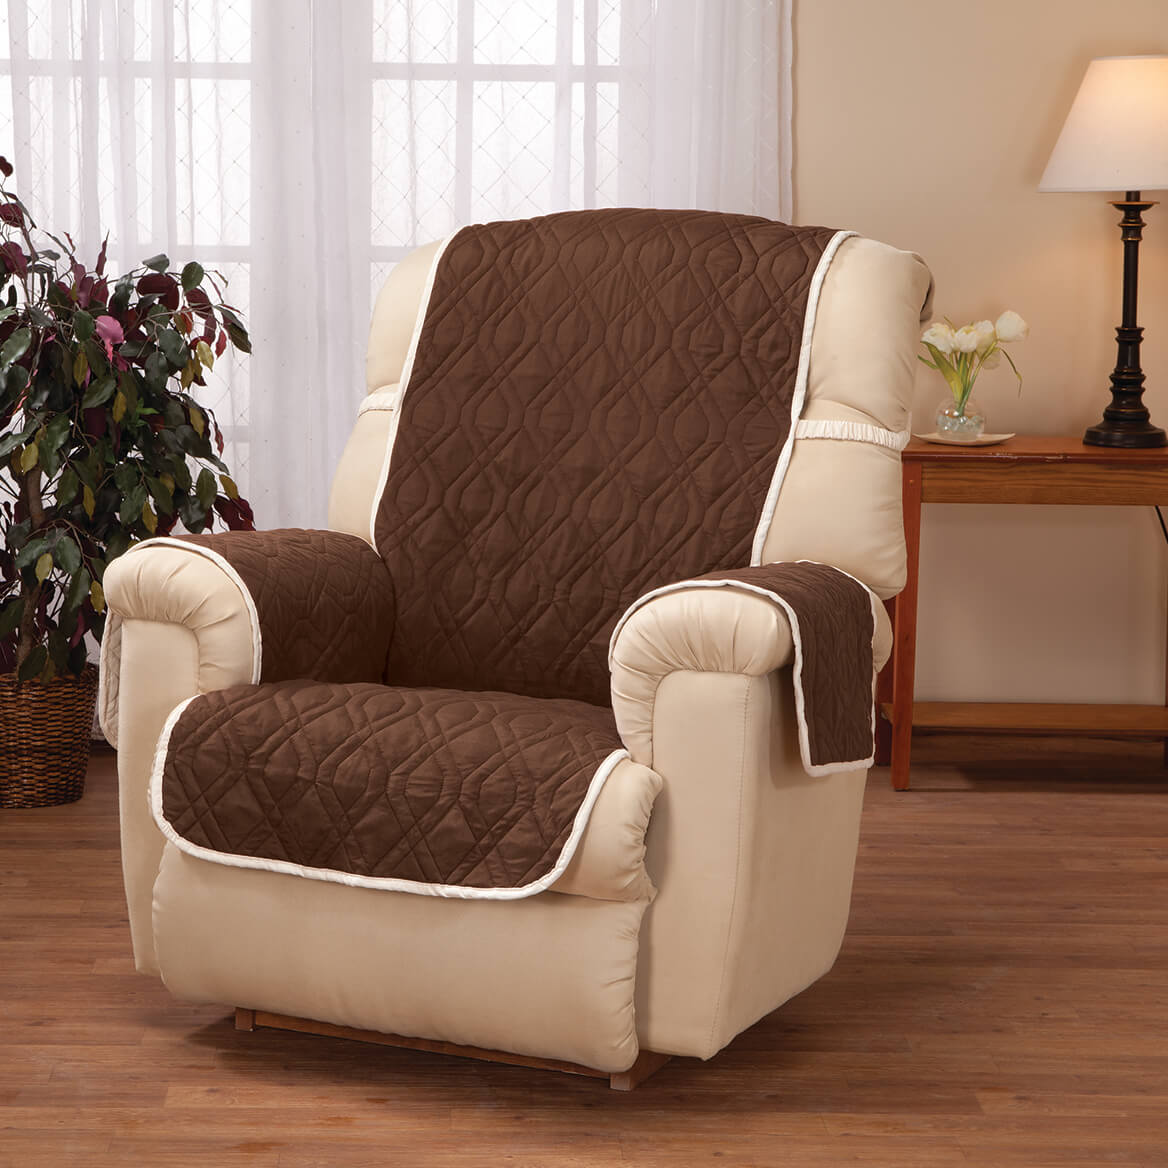 Waterproof Chair Covers Deluxe Reversible Waterproof Recliner Chair Cover Walter